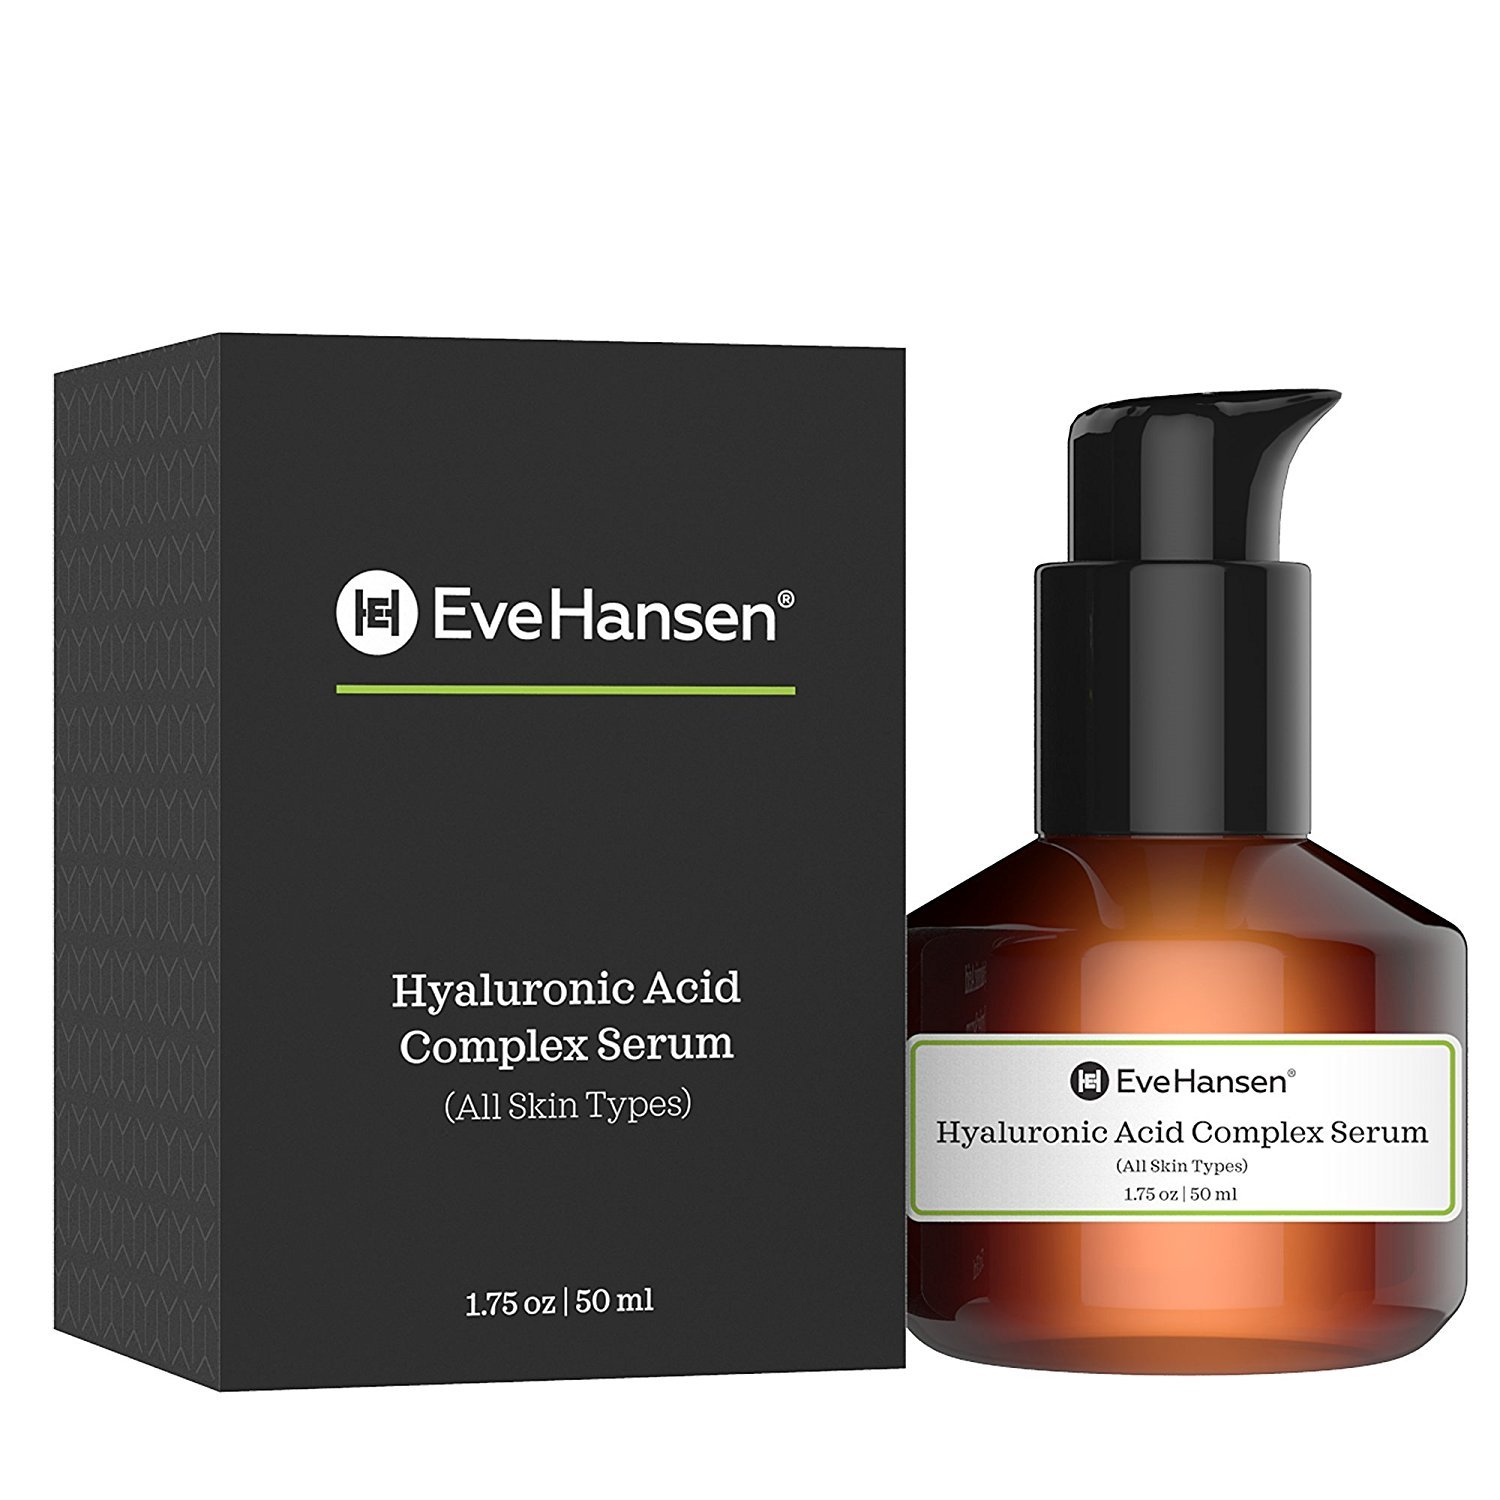 Hyaluronic Acid Serum with Vitamin E, A & C by Eve Hansen - Pure Anti Aging Serum that Plumps, Moisturizes and Tightens Skin.